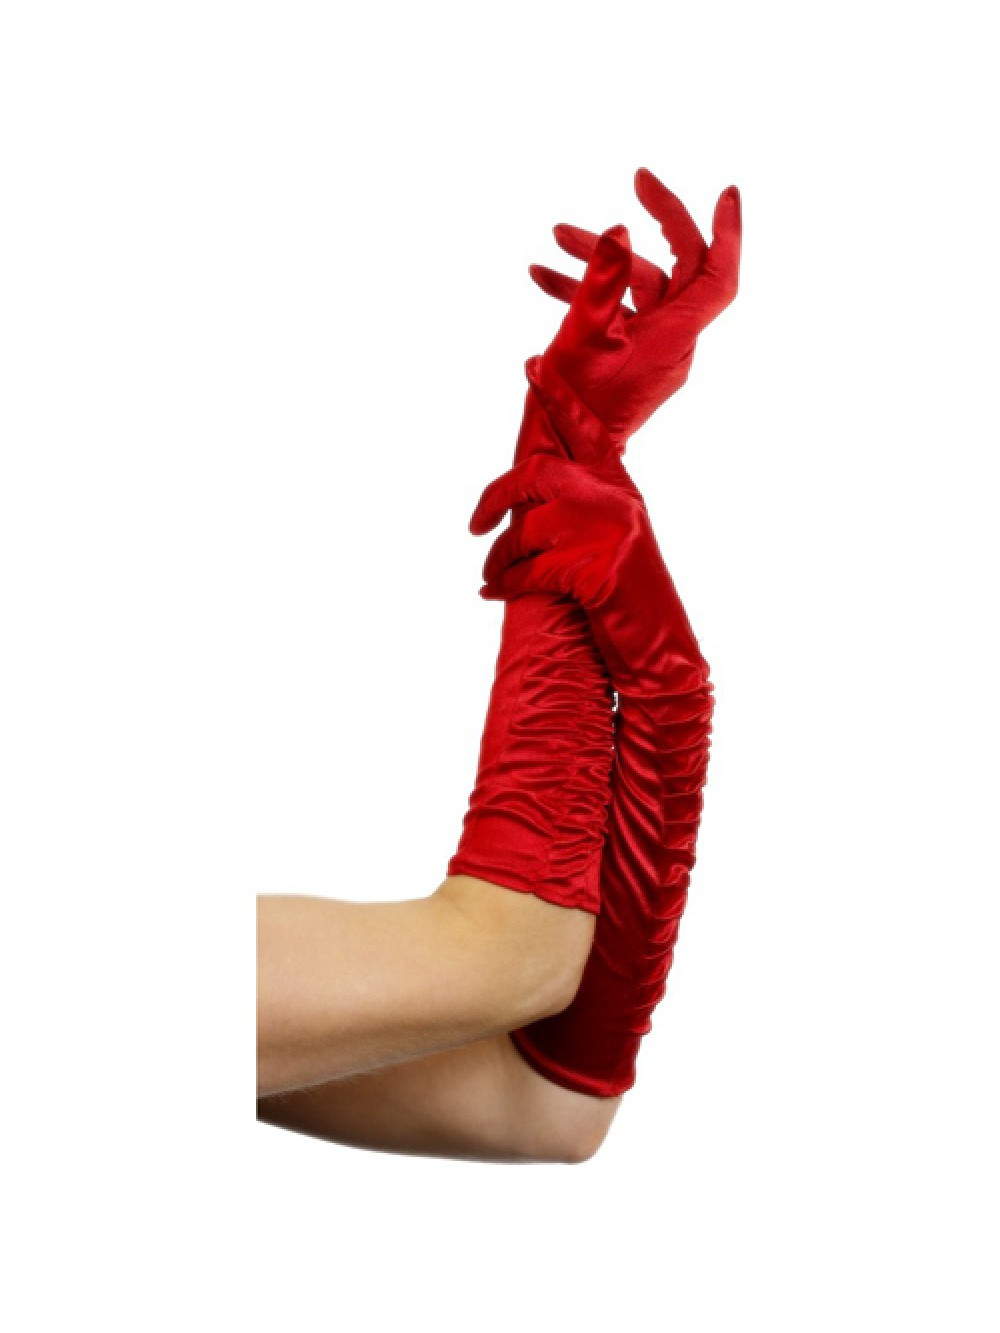 Temptress Gloves Red Long  46cm/18 inches 5020570263457